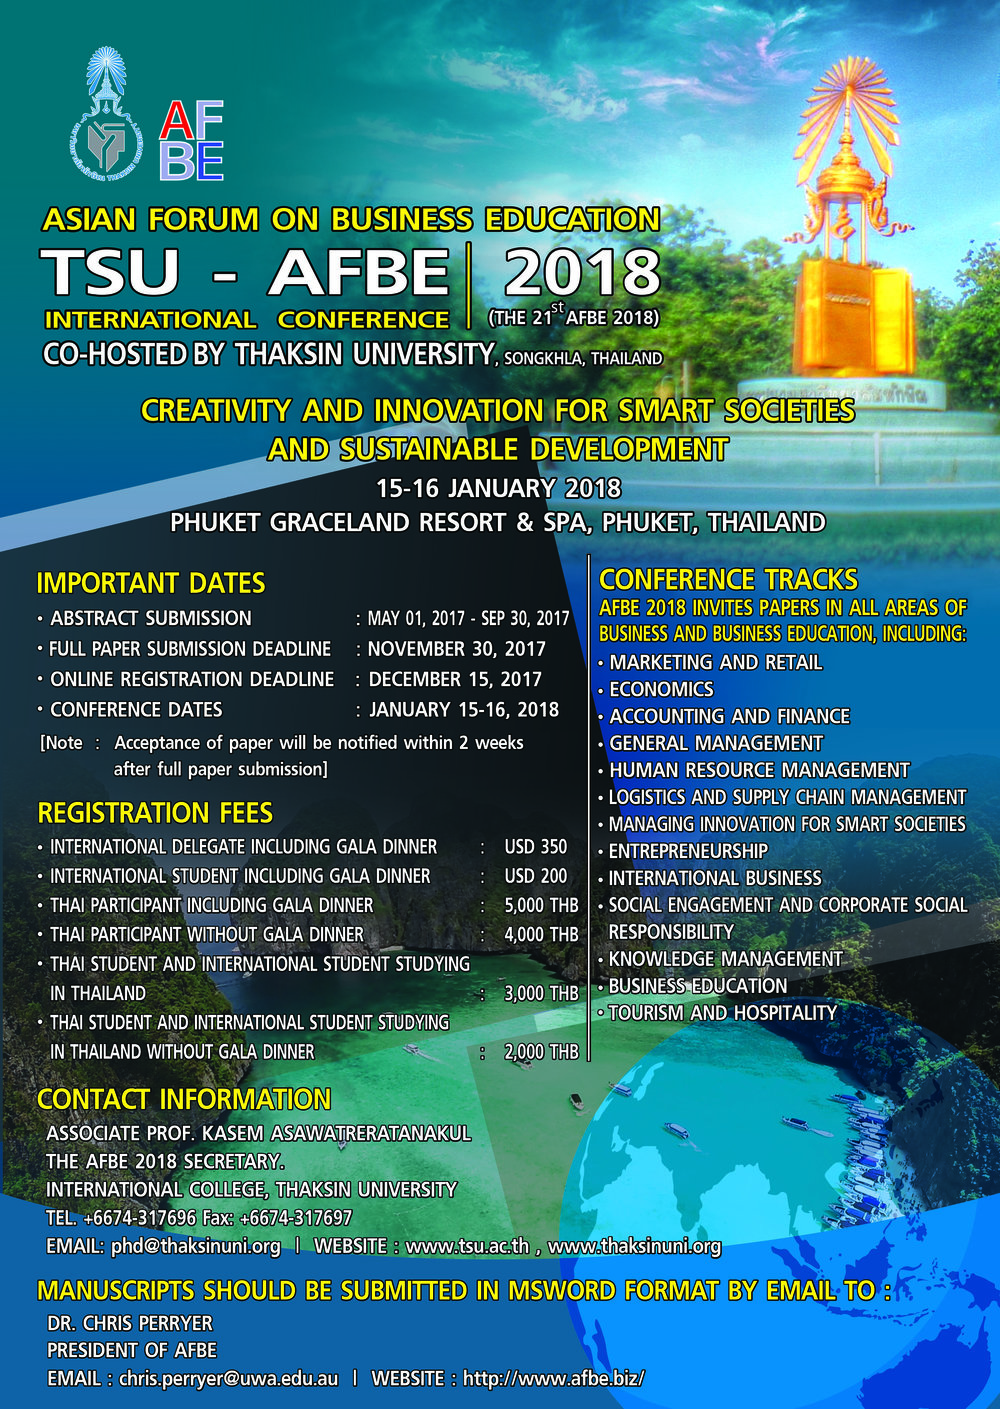 """TSU - AFBE International Conference 2018  - Welcome to the Upcoming International Conference !! The 21st TSU - AFBE Conference 2018      The International College, Thaksin University will be organizing International Conference on the theme of """"Creativity and Innovation for Smart Societies and Sustainable Development"""" during 15th – 16th January, 2018 at Phuket Graceland Resort and Spa, Phuket, ThailandRegister for the Conference Click Here!"""